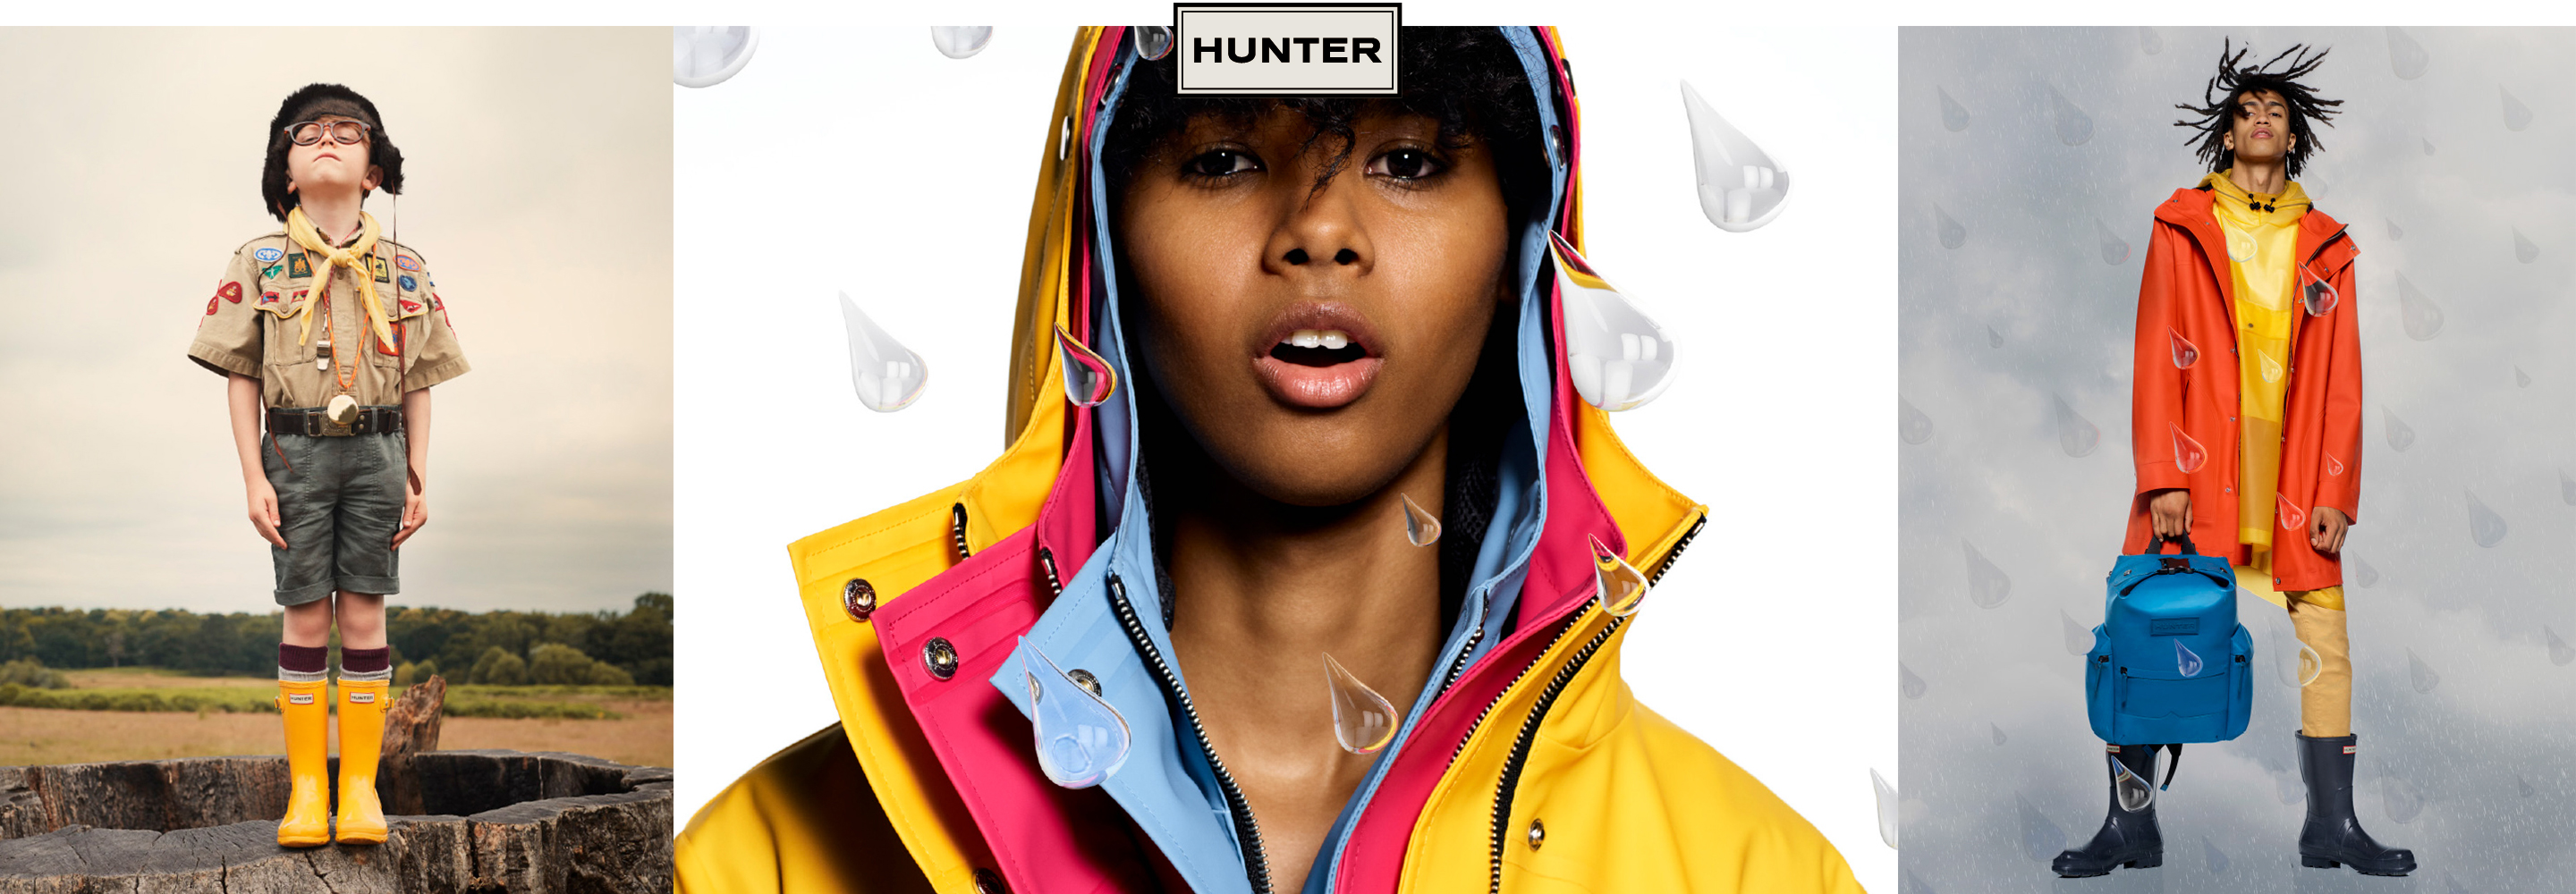 Shop Hunter Boots and Clothing